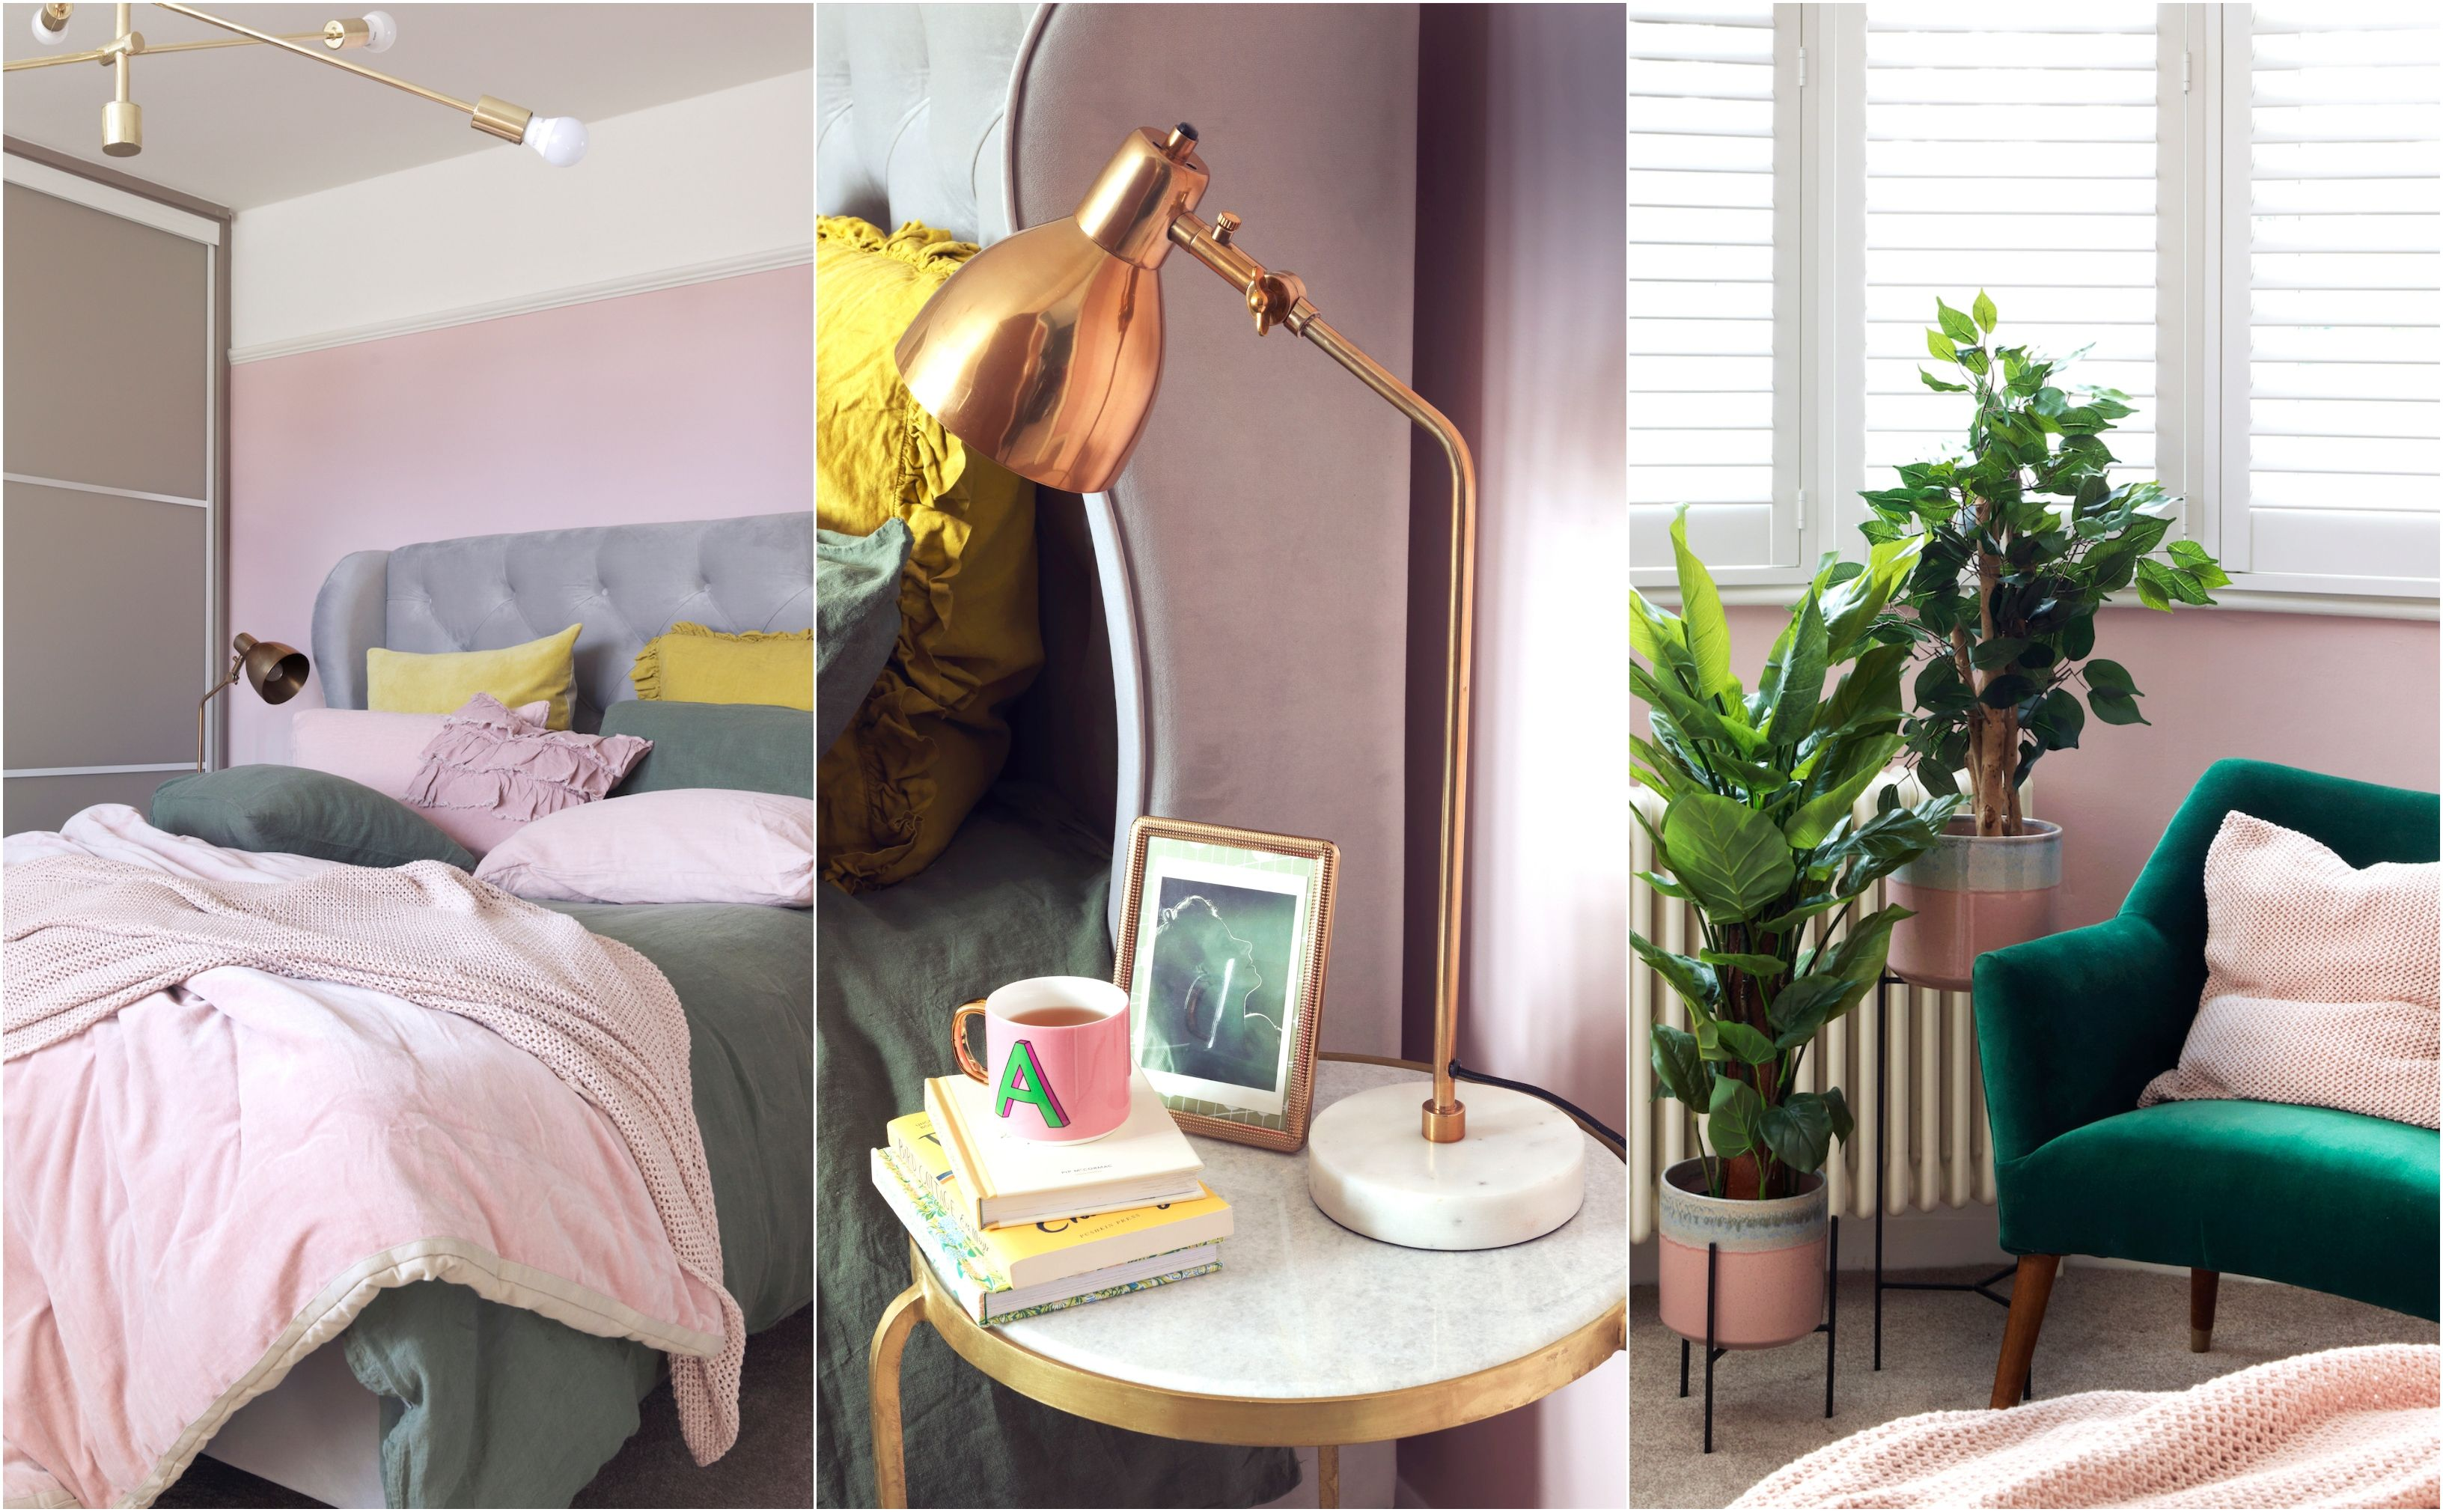 House Beautiful's interiors editor overhauls entire bedroom for £5,000